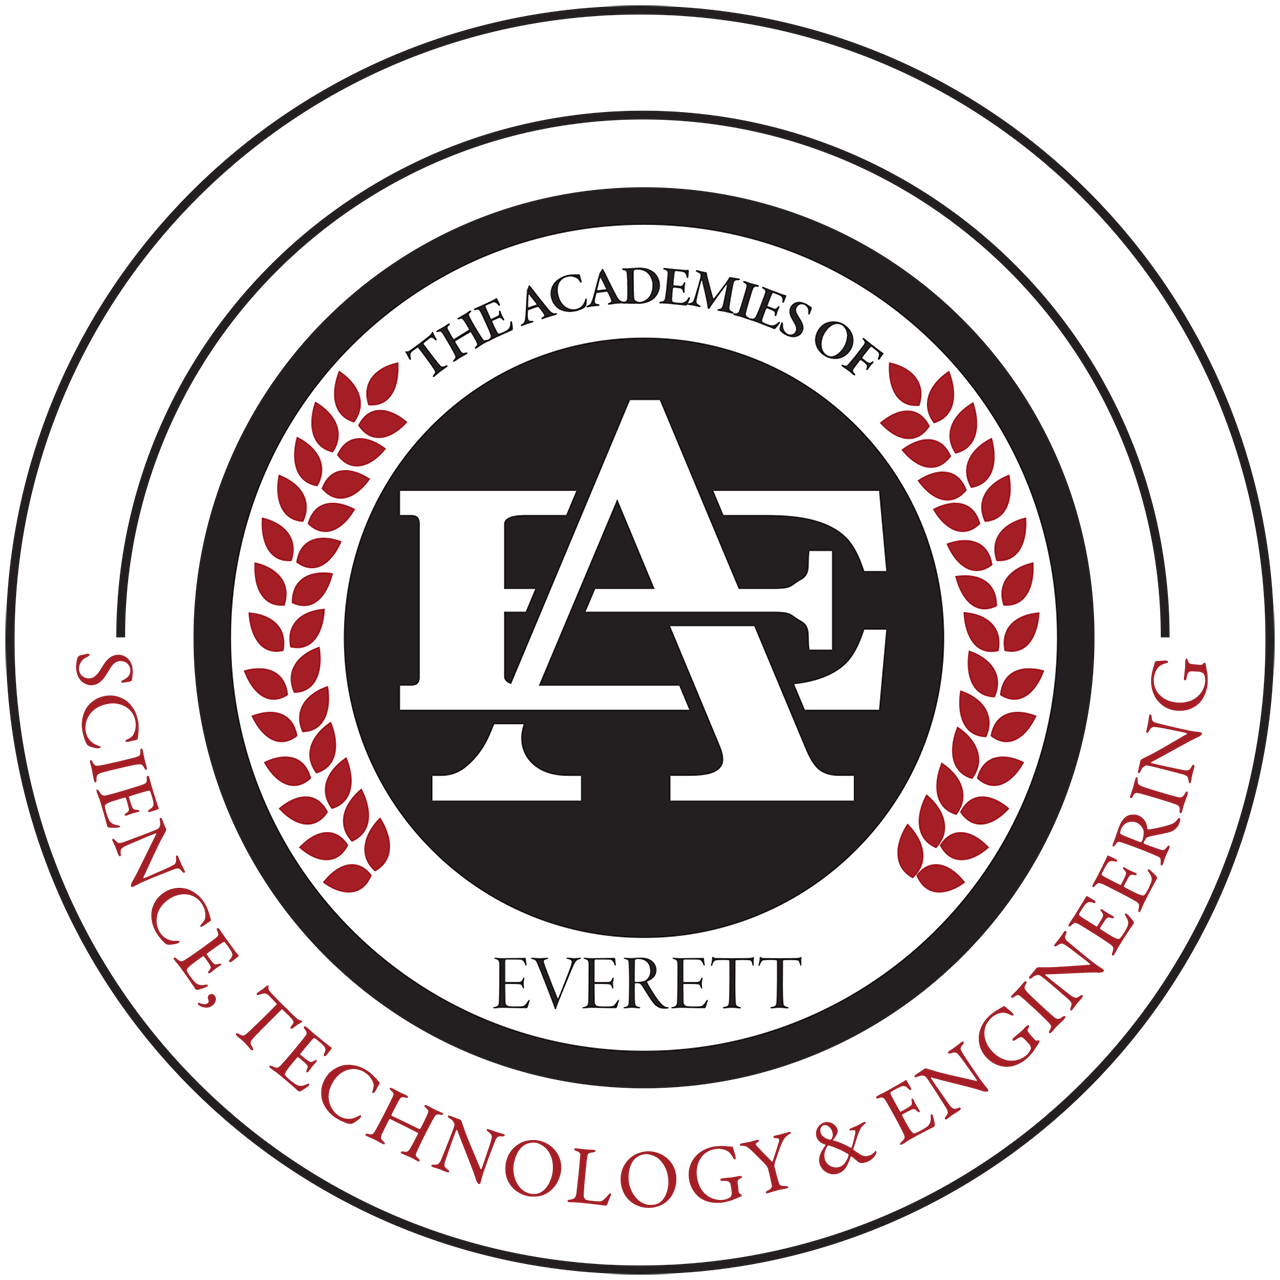 The Science, Technology and Engineering logo featuring red lettering, circles and leafs